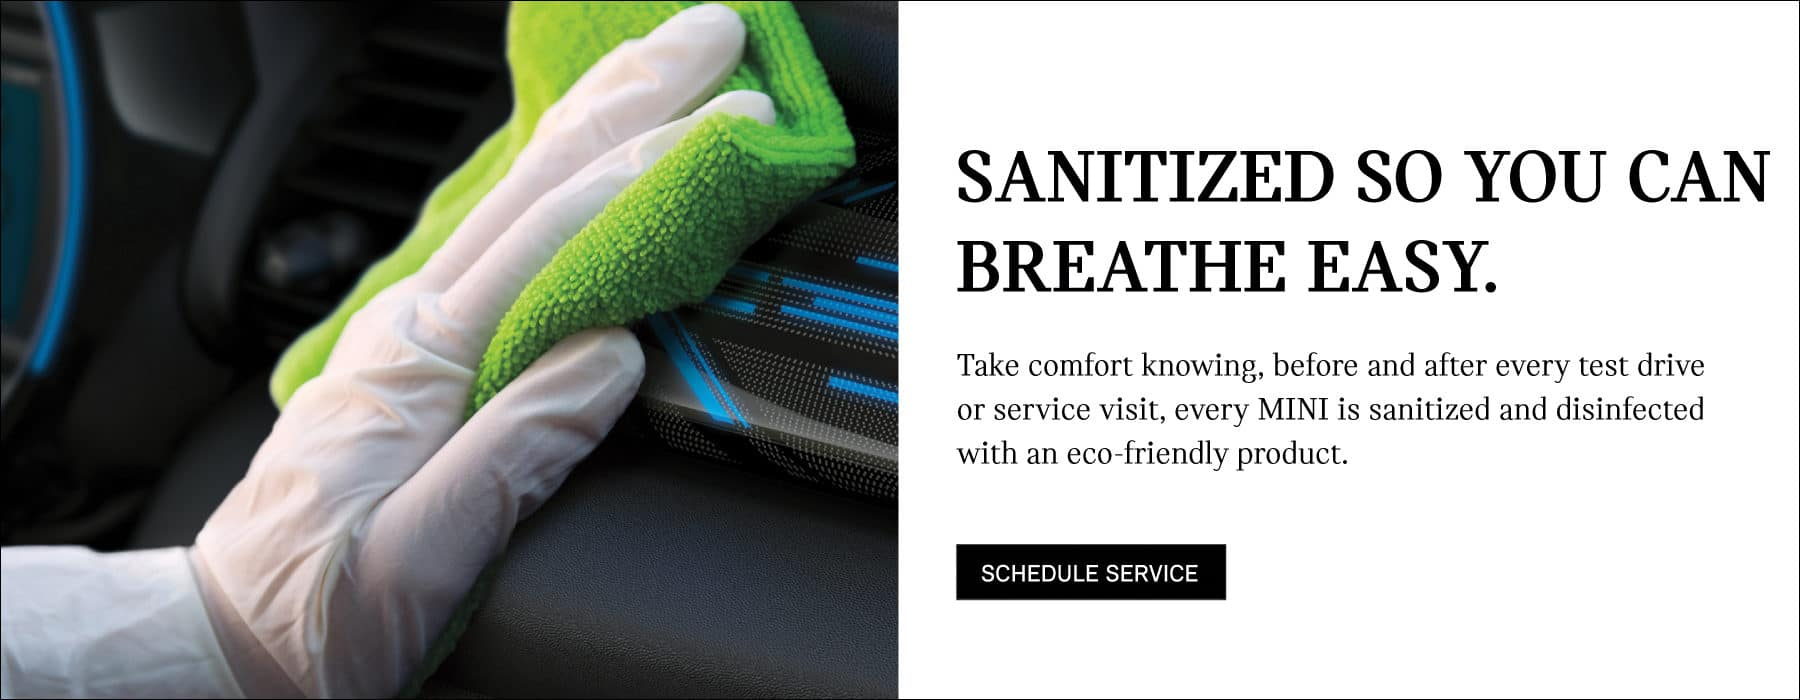 Sanitized so you can breathe easy. Take comfort knowing, before and after every test drive and service visit, every MINI is sanitized and disinfected with an eco friendly product.